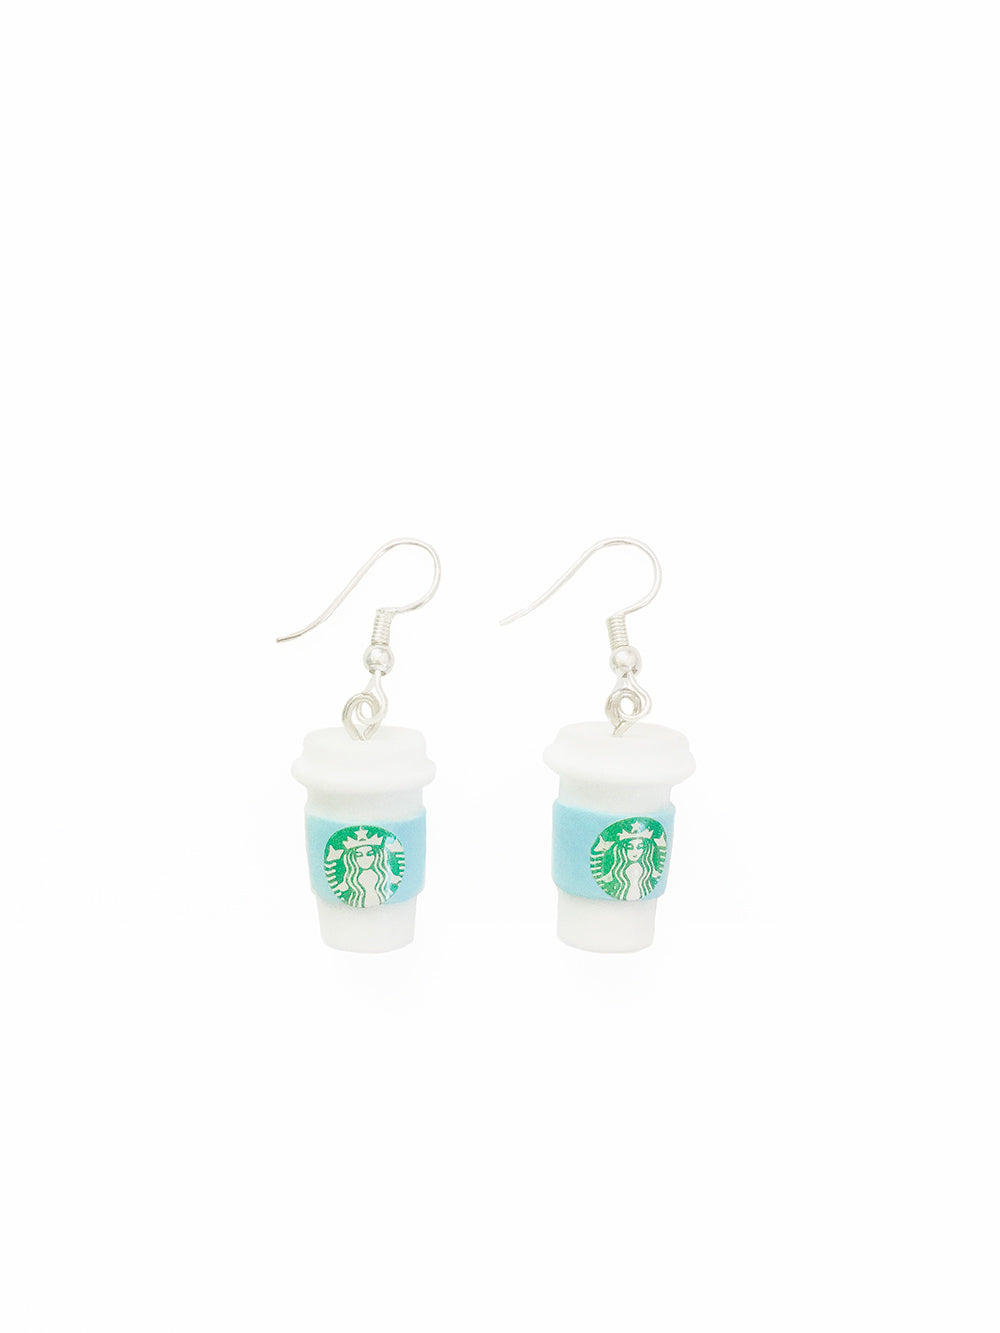 Starbucks Cup Earrings